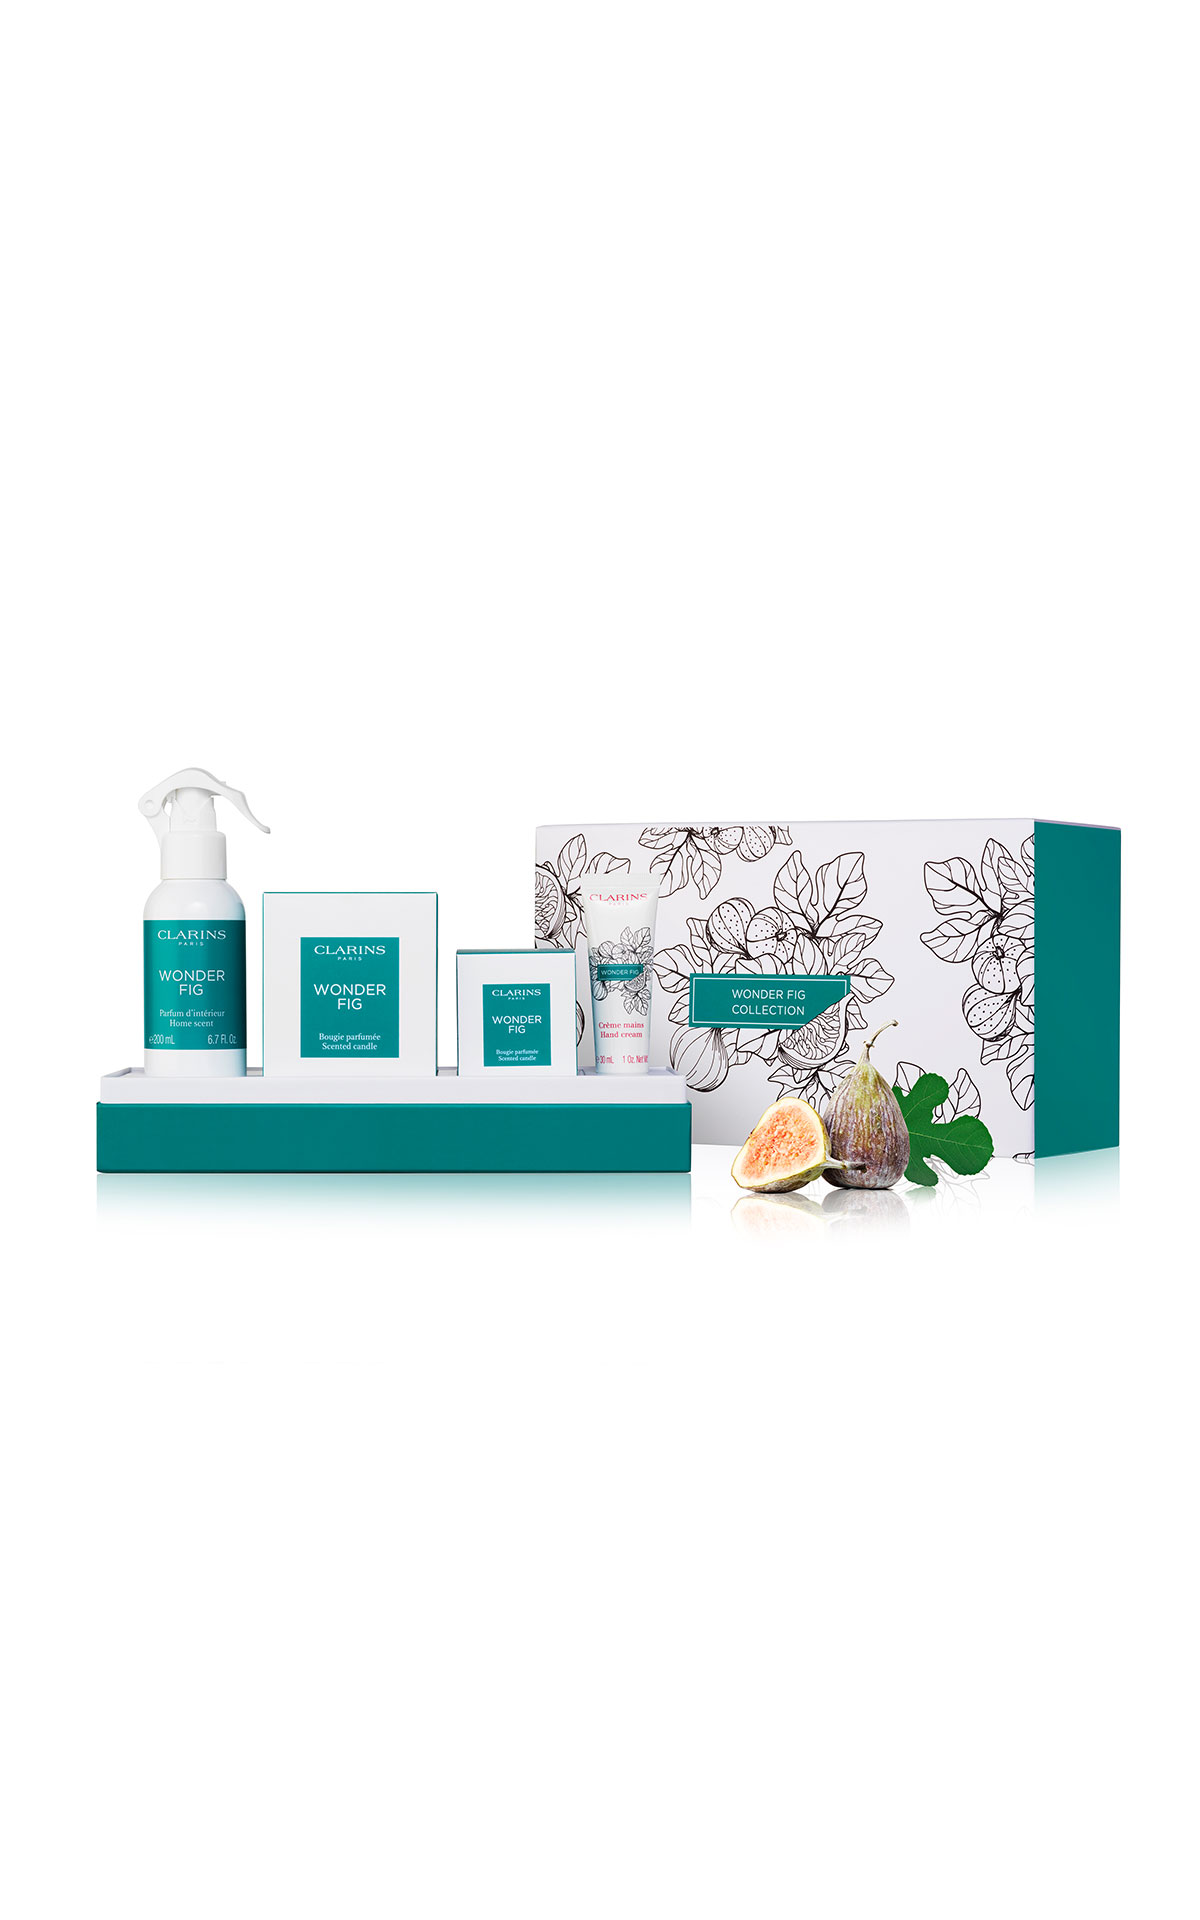 Clarins Wonder fig collection from Bicester Village